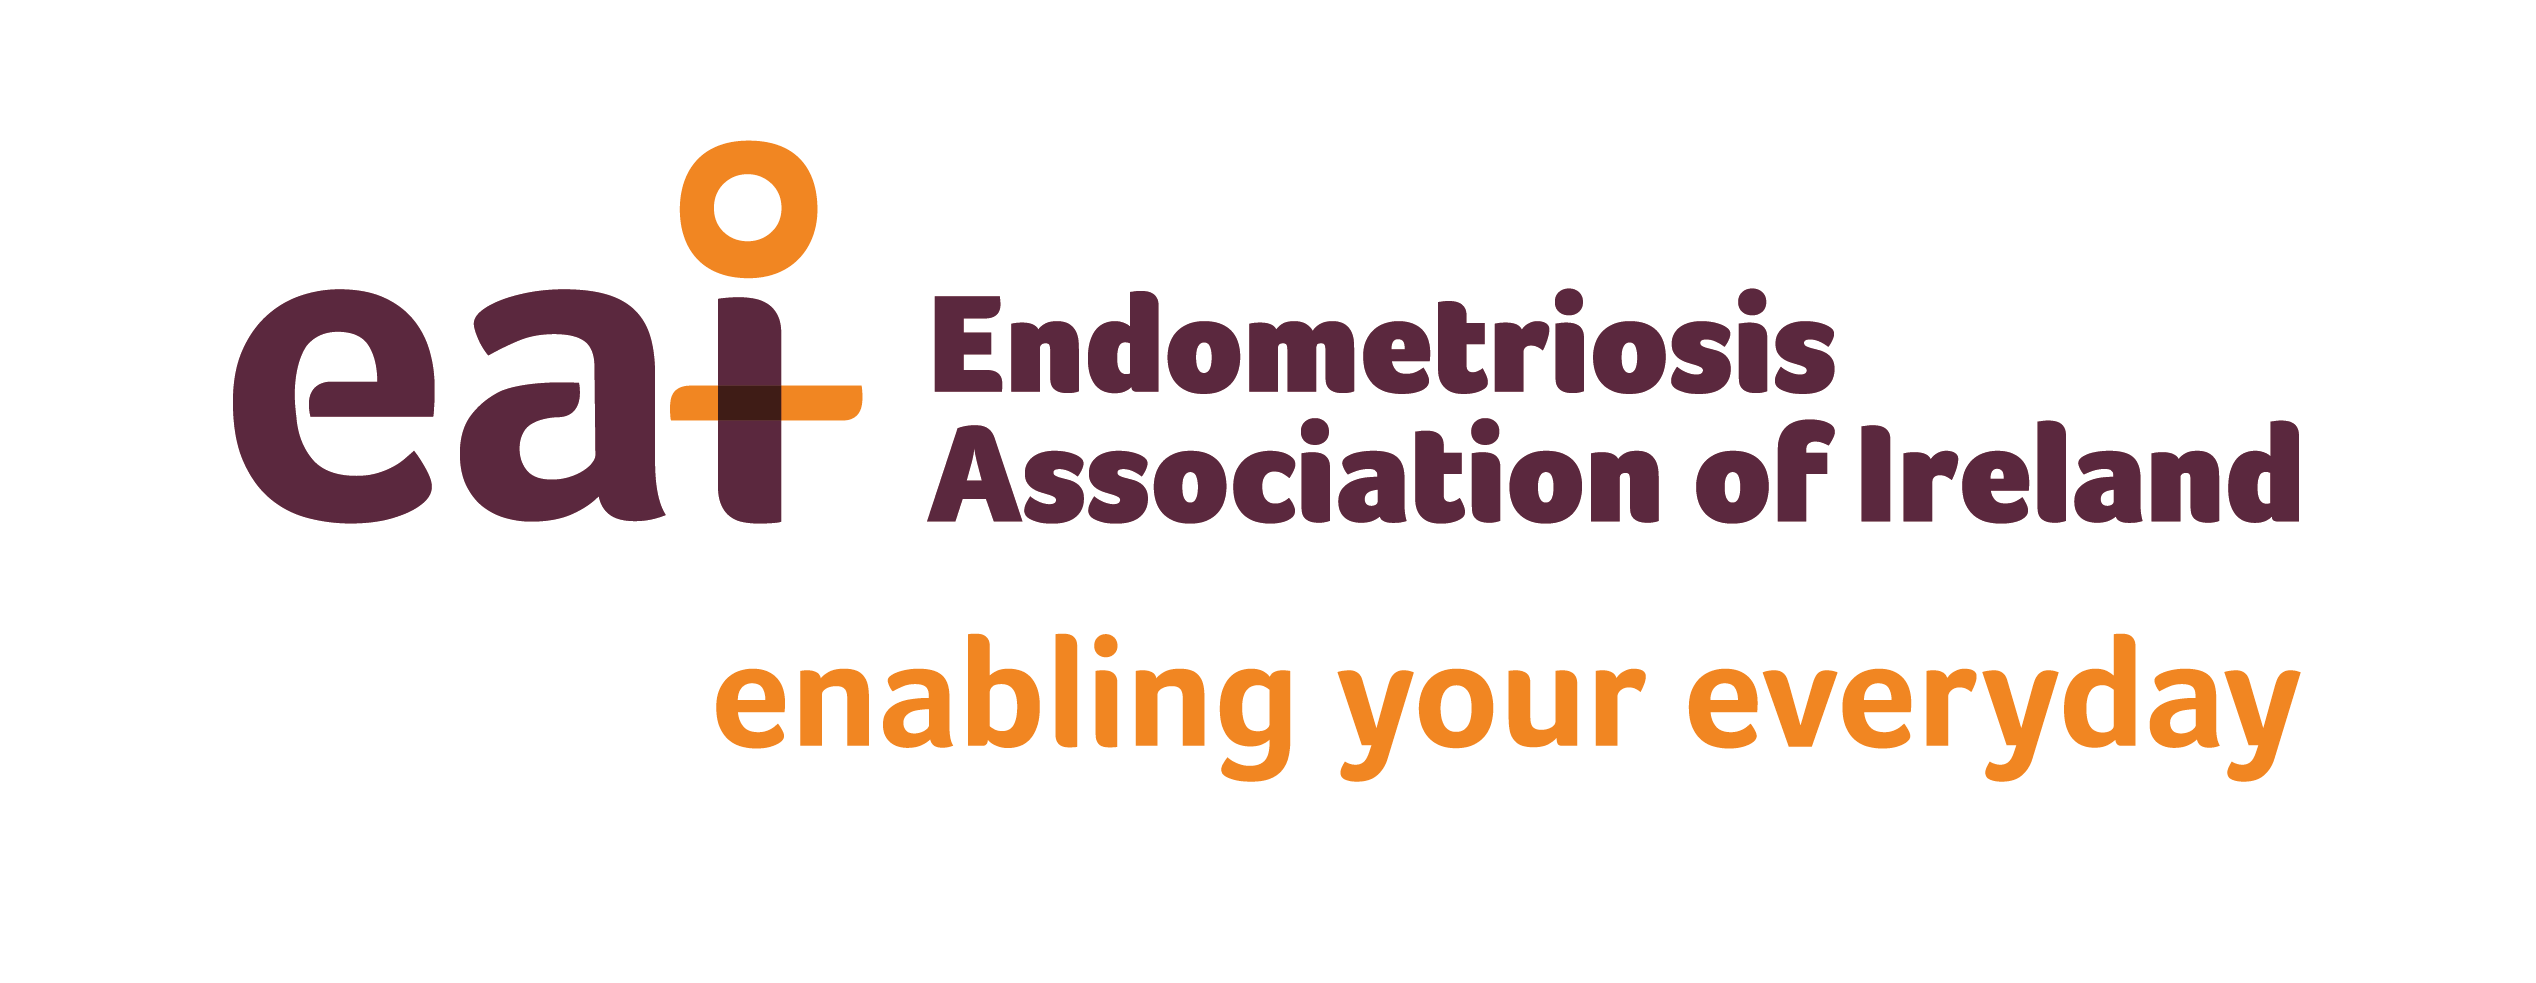 Stage iv endometriosis symptoms - Eai Endometriosis Association Of Ireland